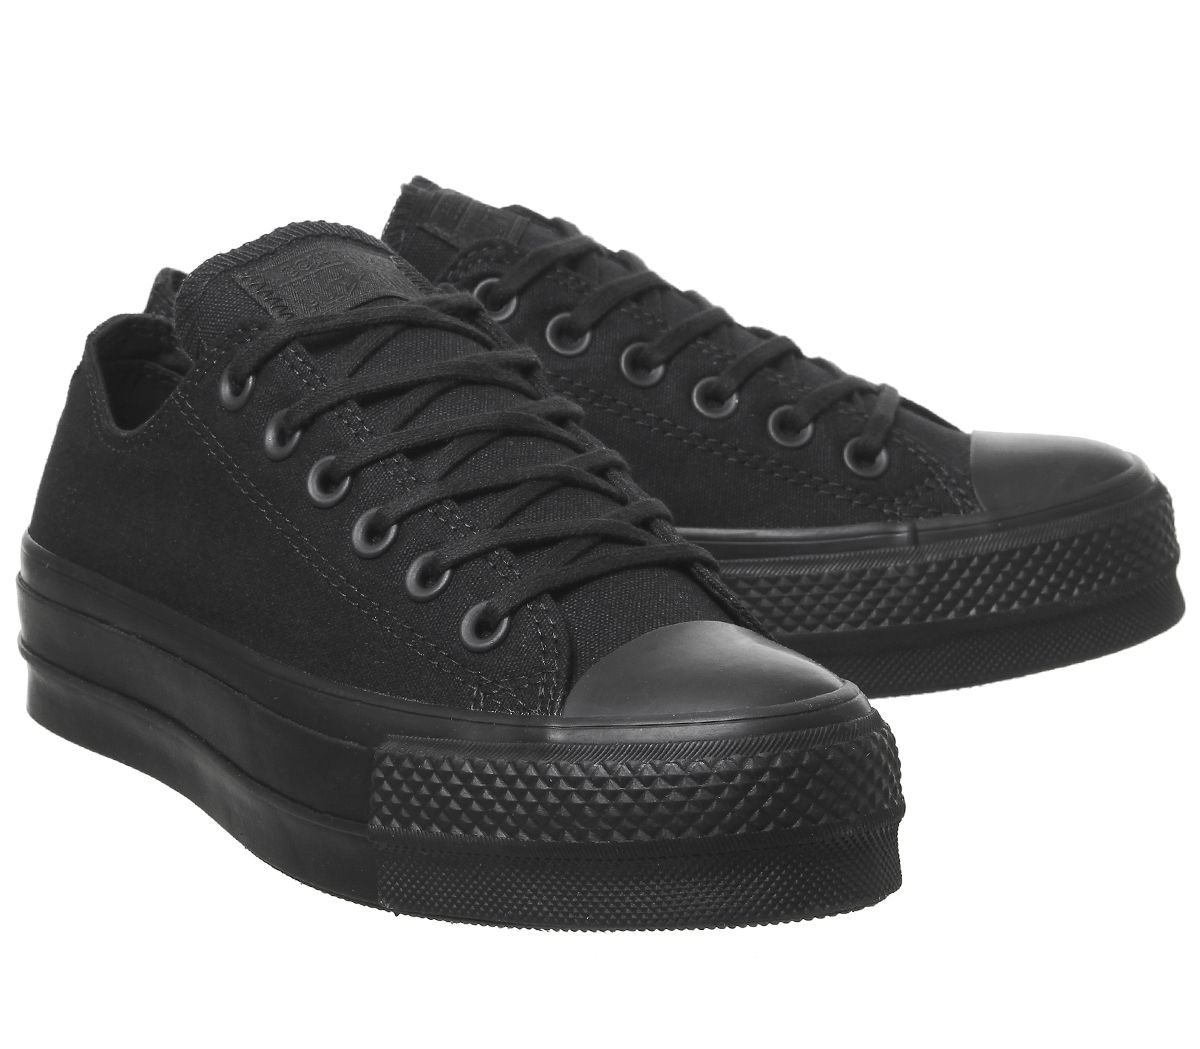 6c9c54009004b Sentinel Womens Converse All Star Low Platform Trainers Black Mono Trainers  Shoes